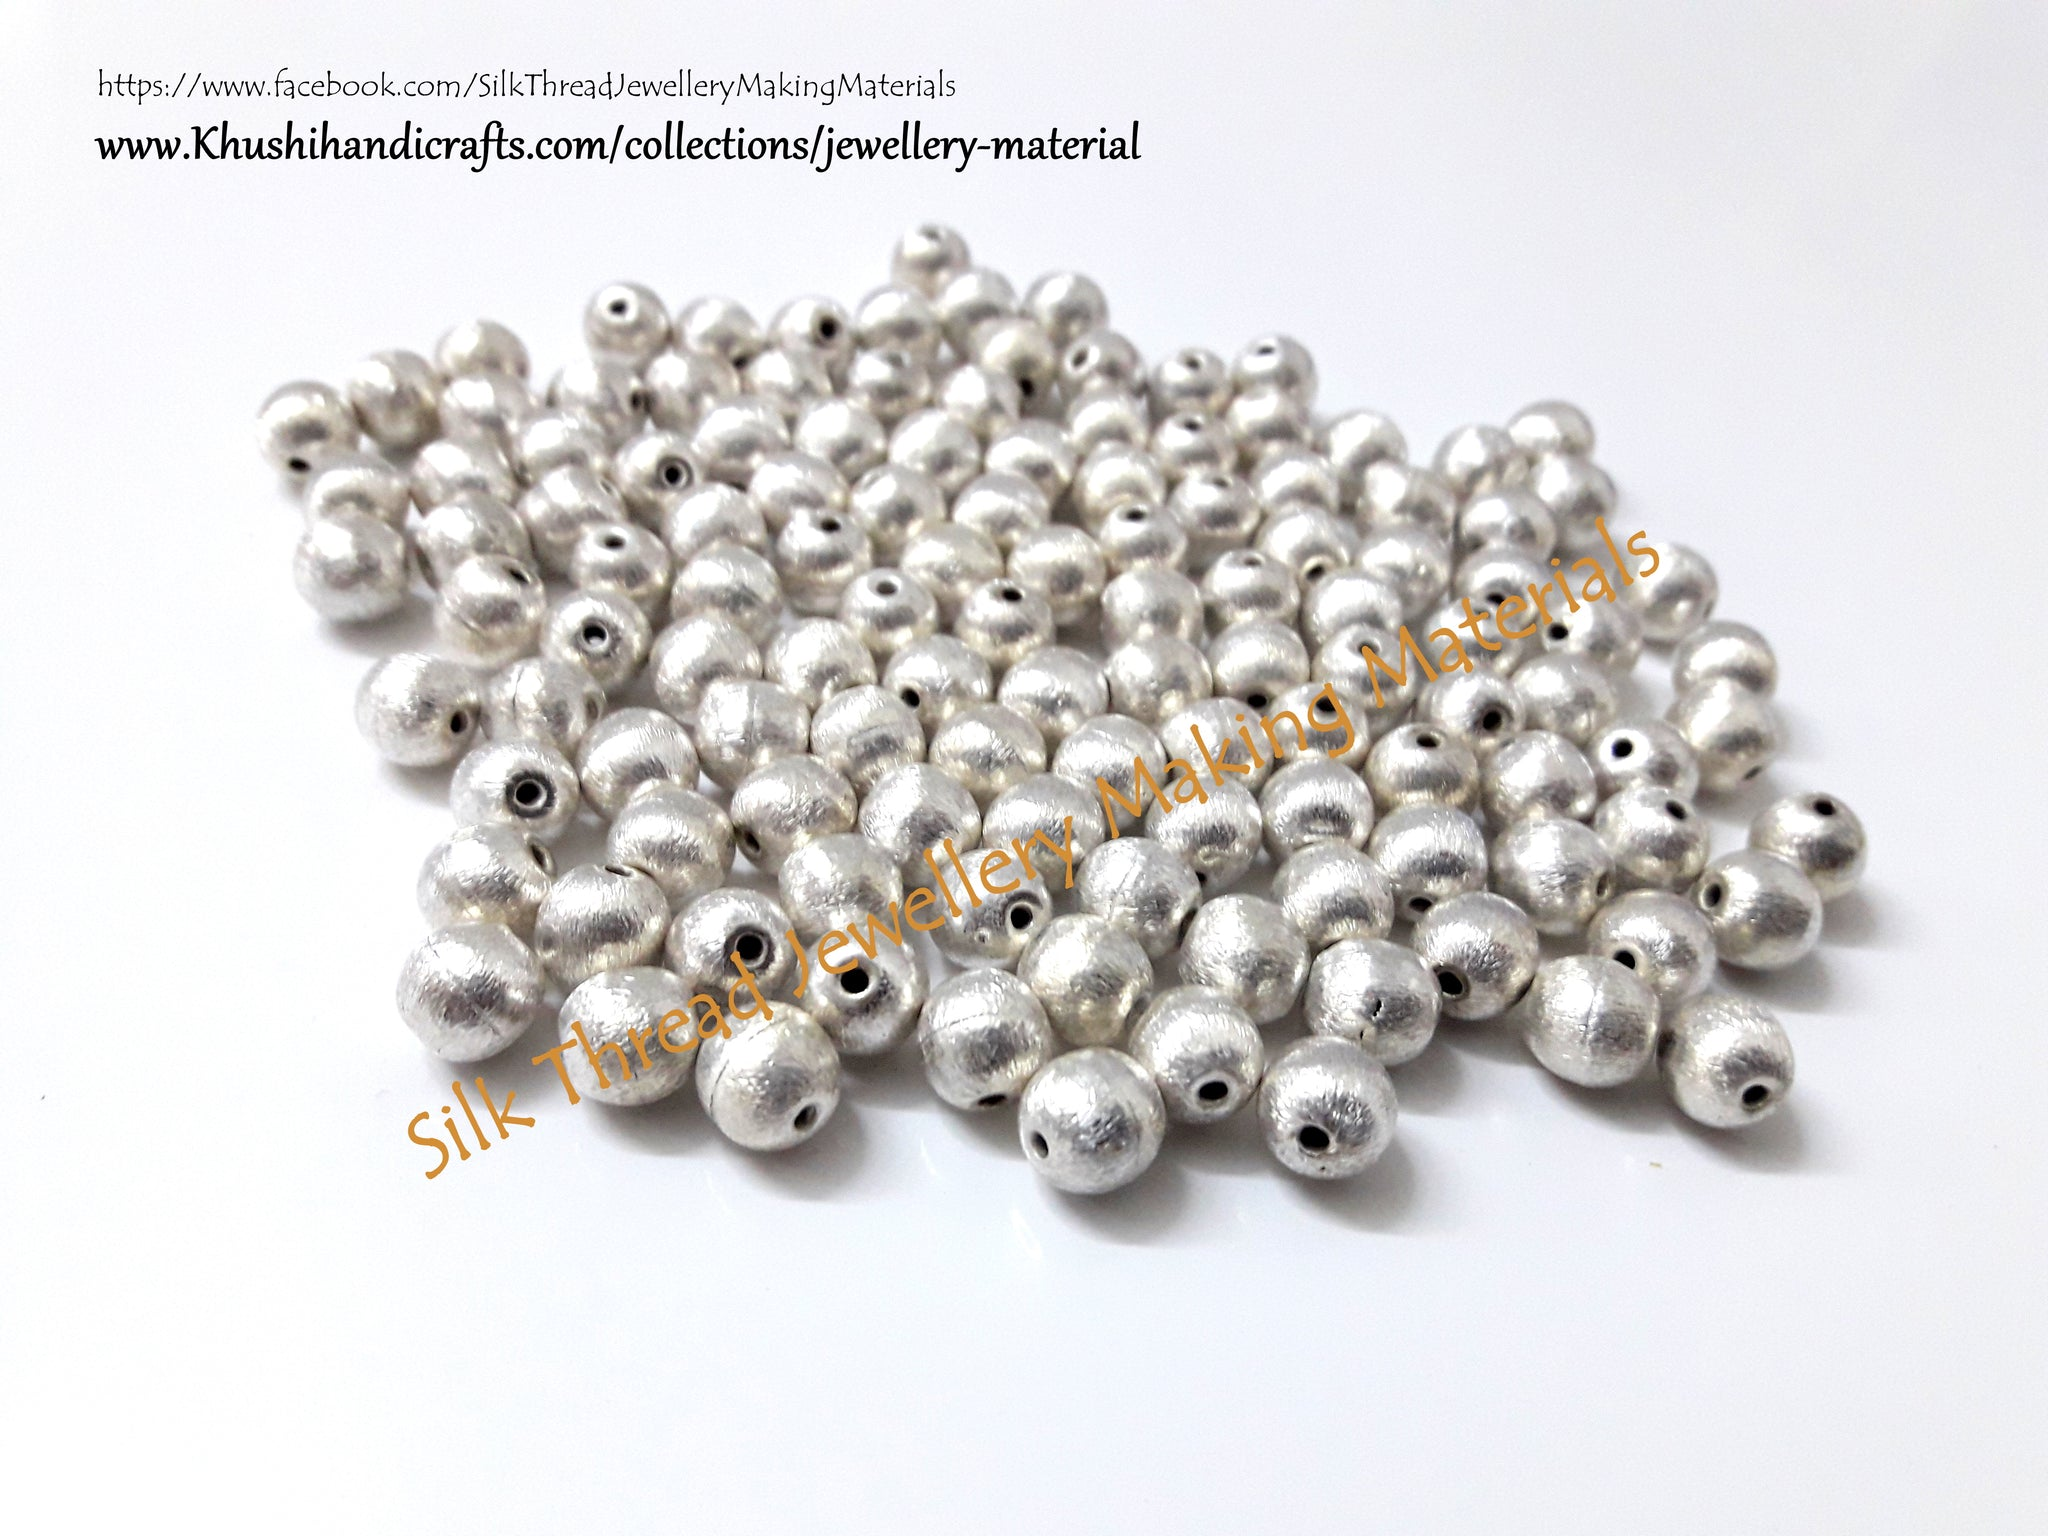 beads making bali spacer in for itm jewelry bulk sale supplies gold finding rose barrel tarnish plated non beading